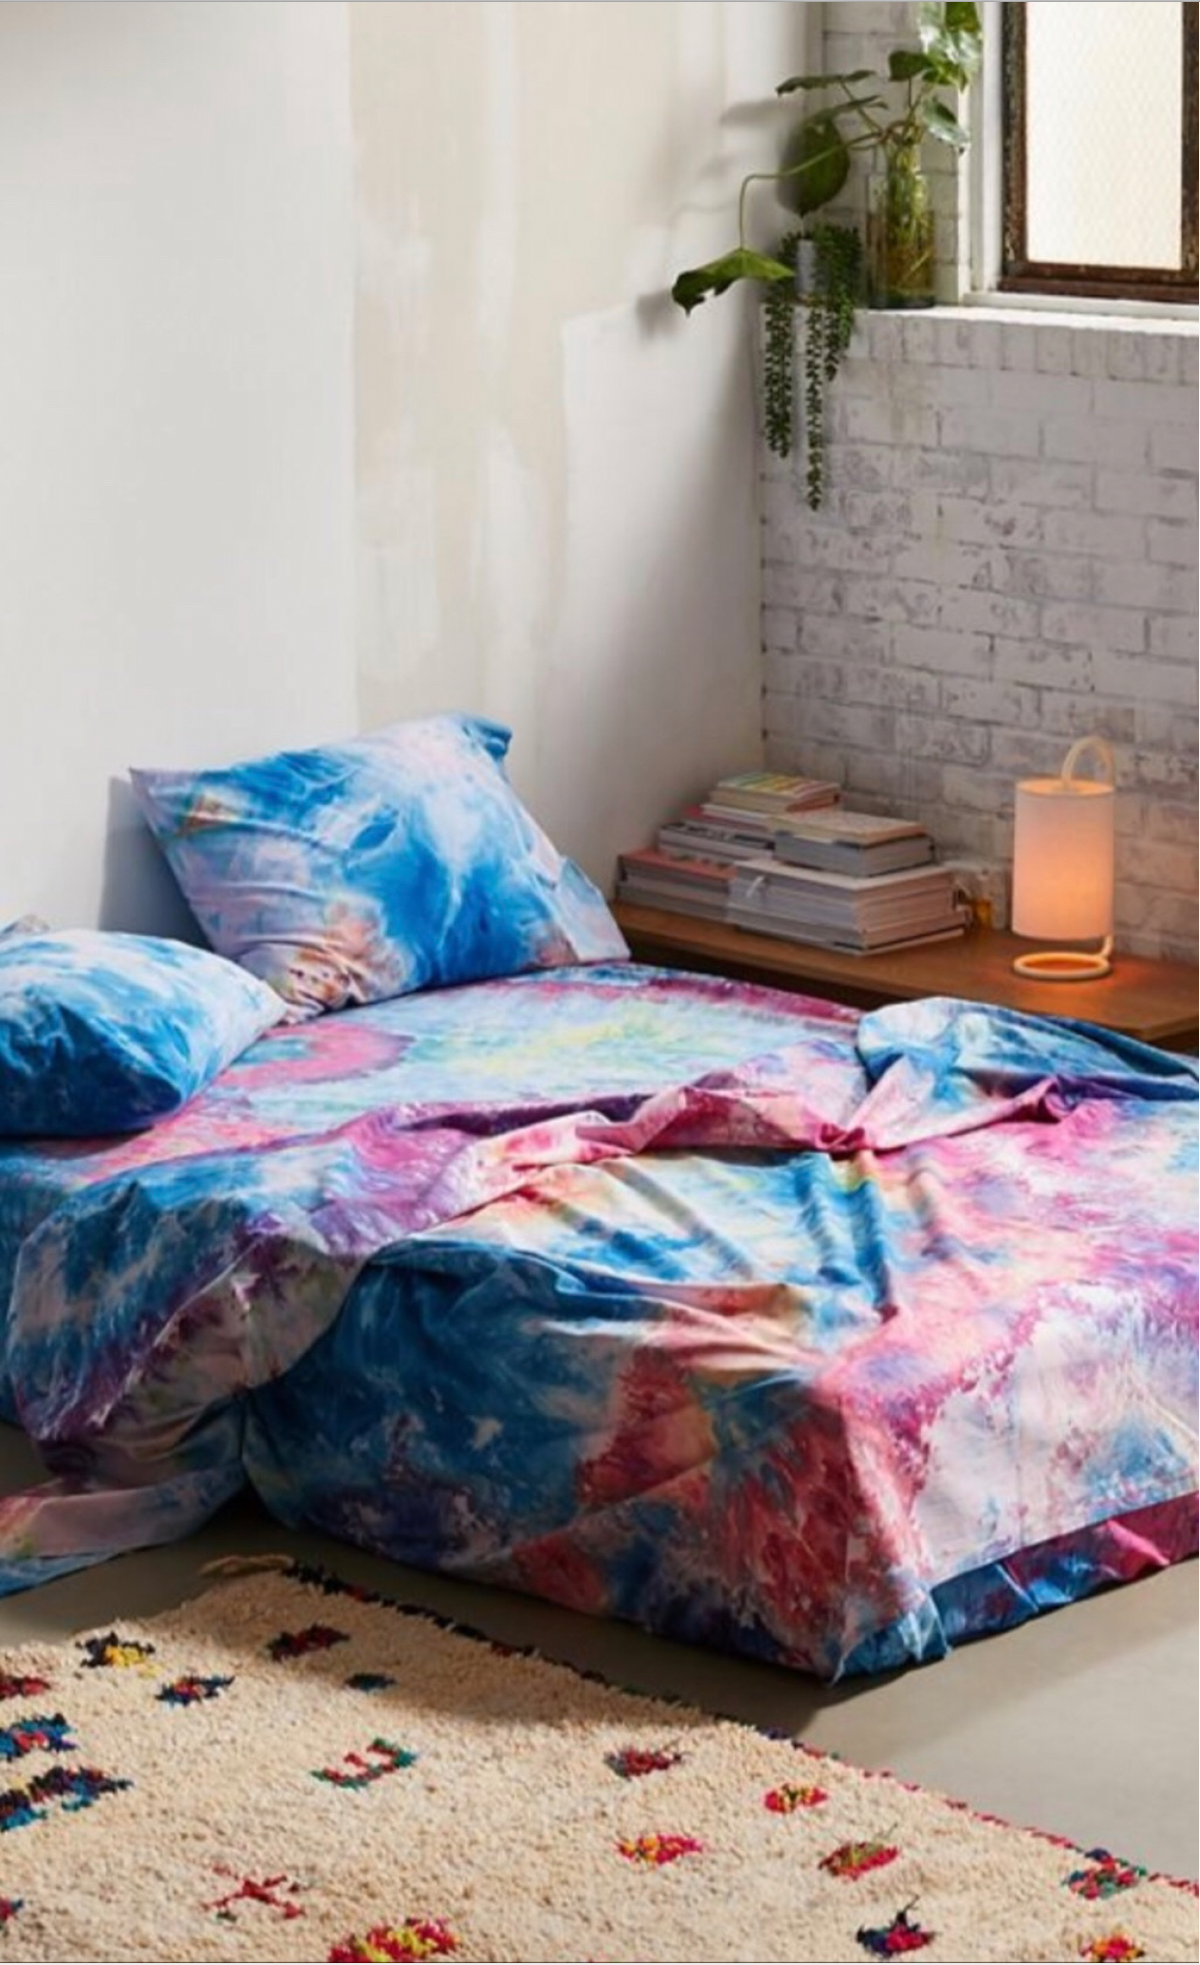 Bedding in Rainbow - riverside tool & dye